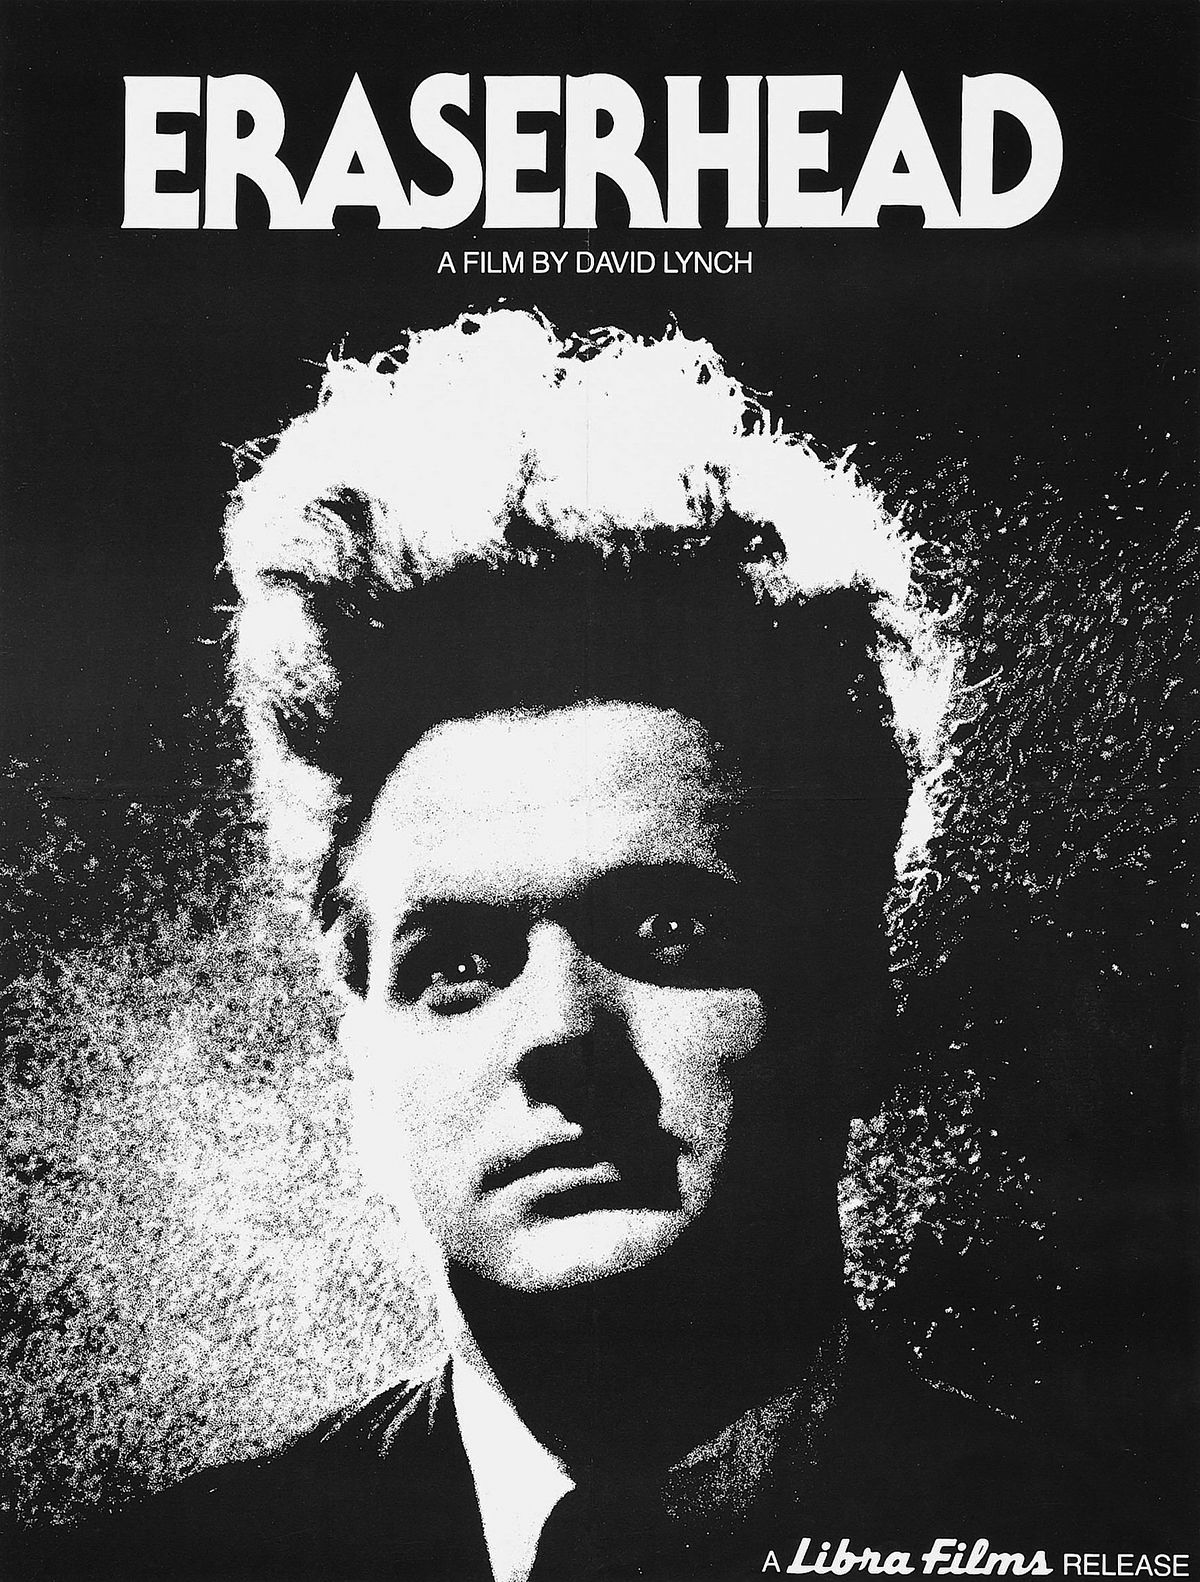 Eraserhead (1977) - Directed by: David LynchStarring: Jack Nance, Charlotte Stewart, Allen JosephRated: NR (Best Guess PG-13)Running Time: 1h 29mTMM Score: 5 stars out of 5STRENGTHS: Overall Directorial VisionWEAKNESSES: It's Weird Dude.